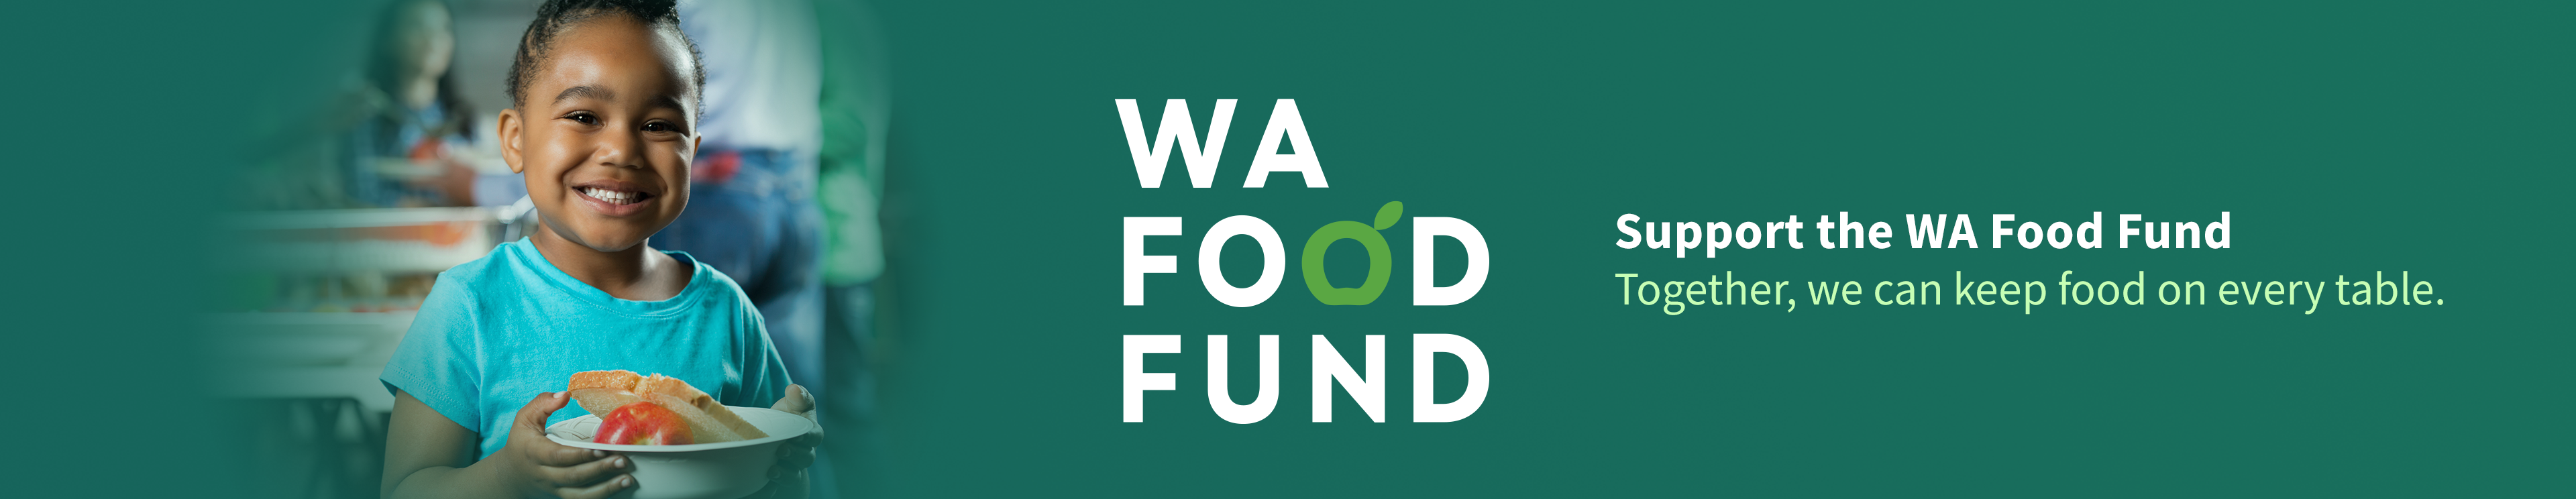 Web banner with WA Food Fund Logo: Support the WA Food Fund. Together, we can keep food on every table.